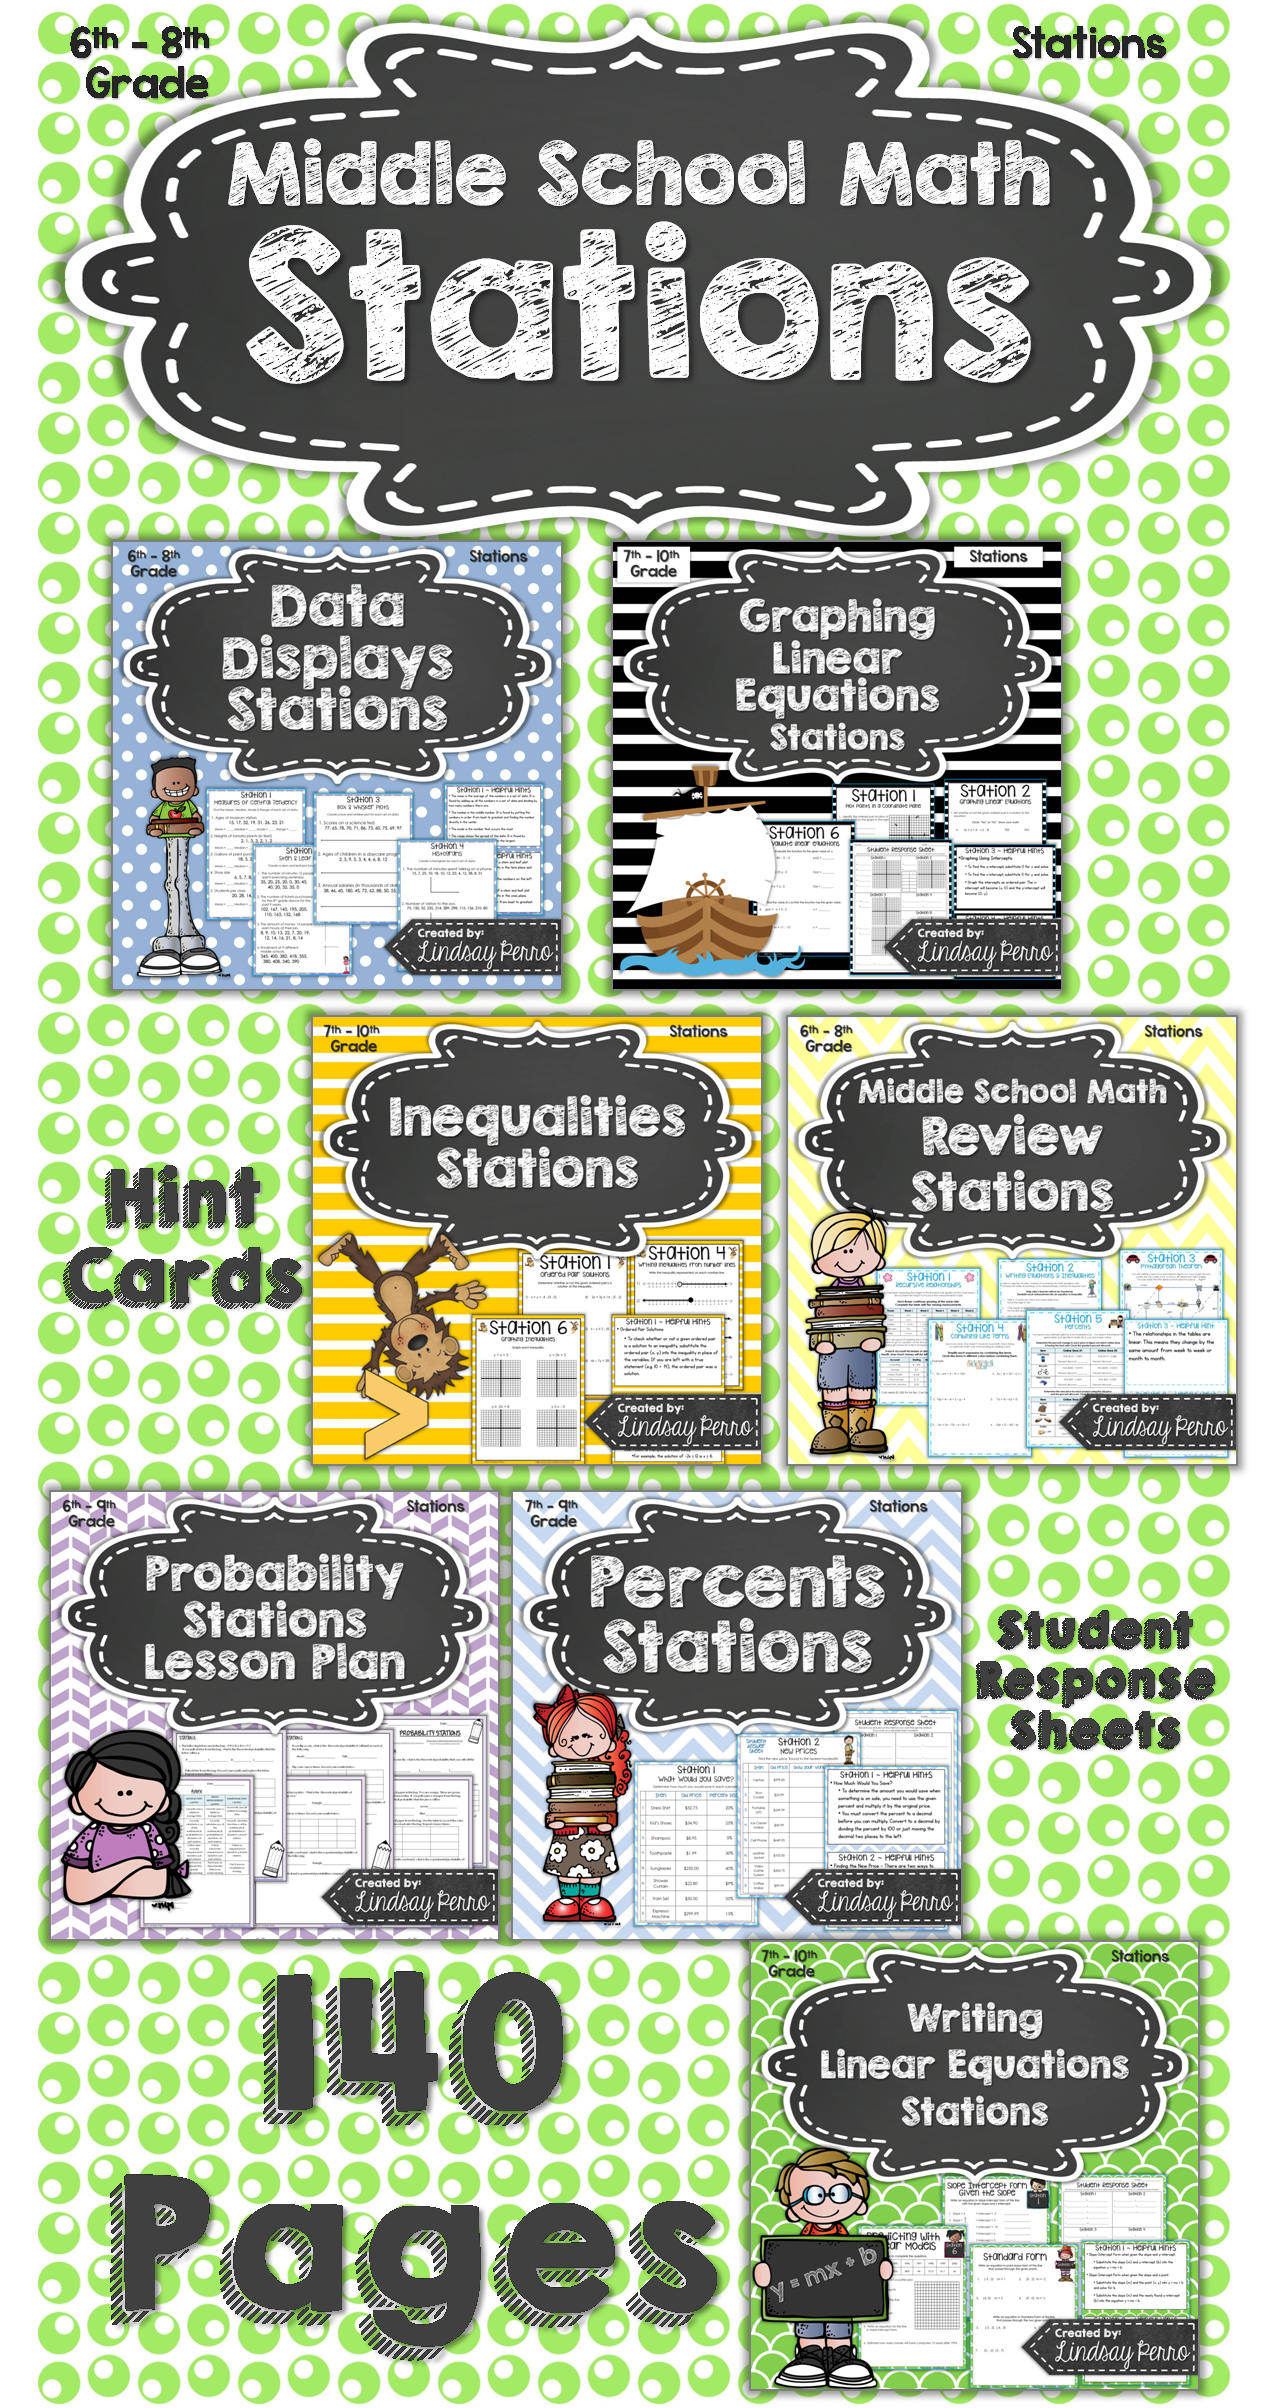 Best Seller Stations Are Not Just For Elementary School